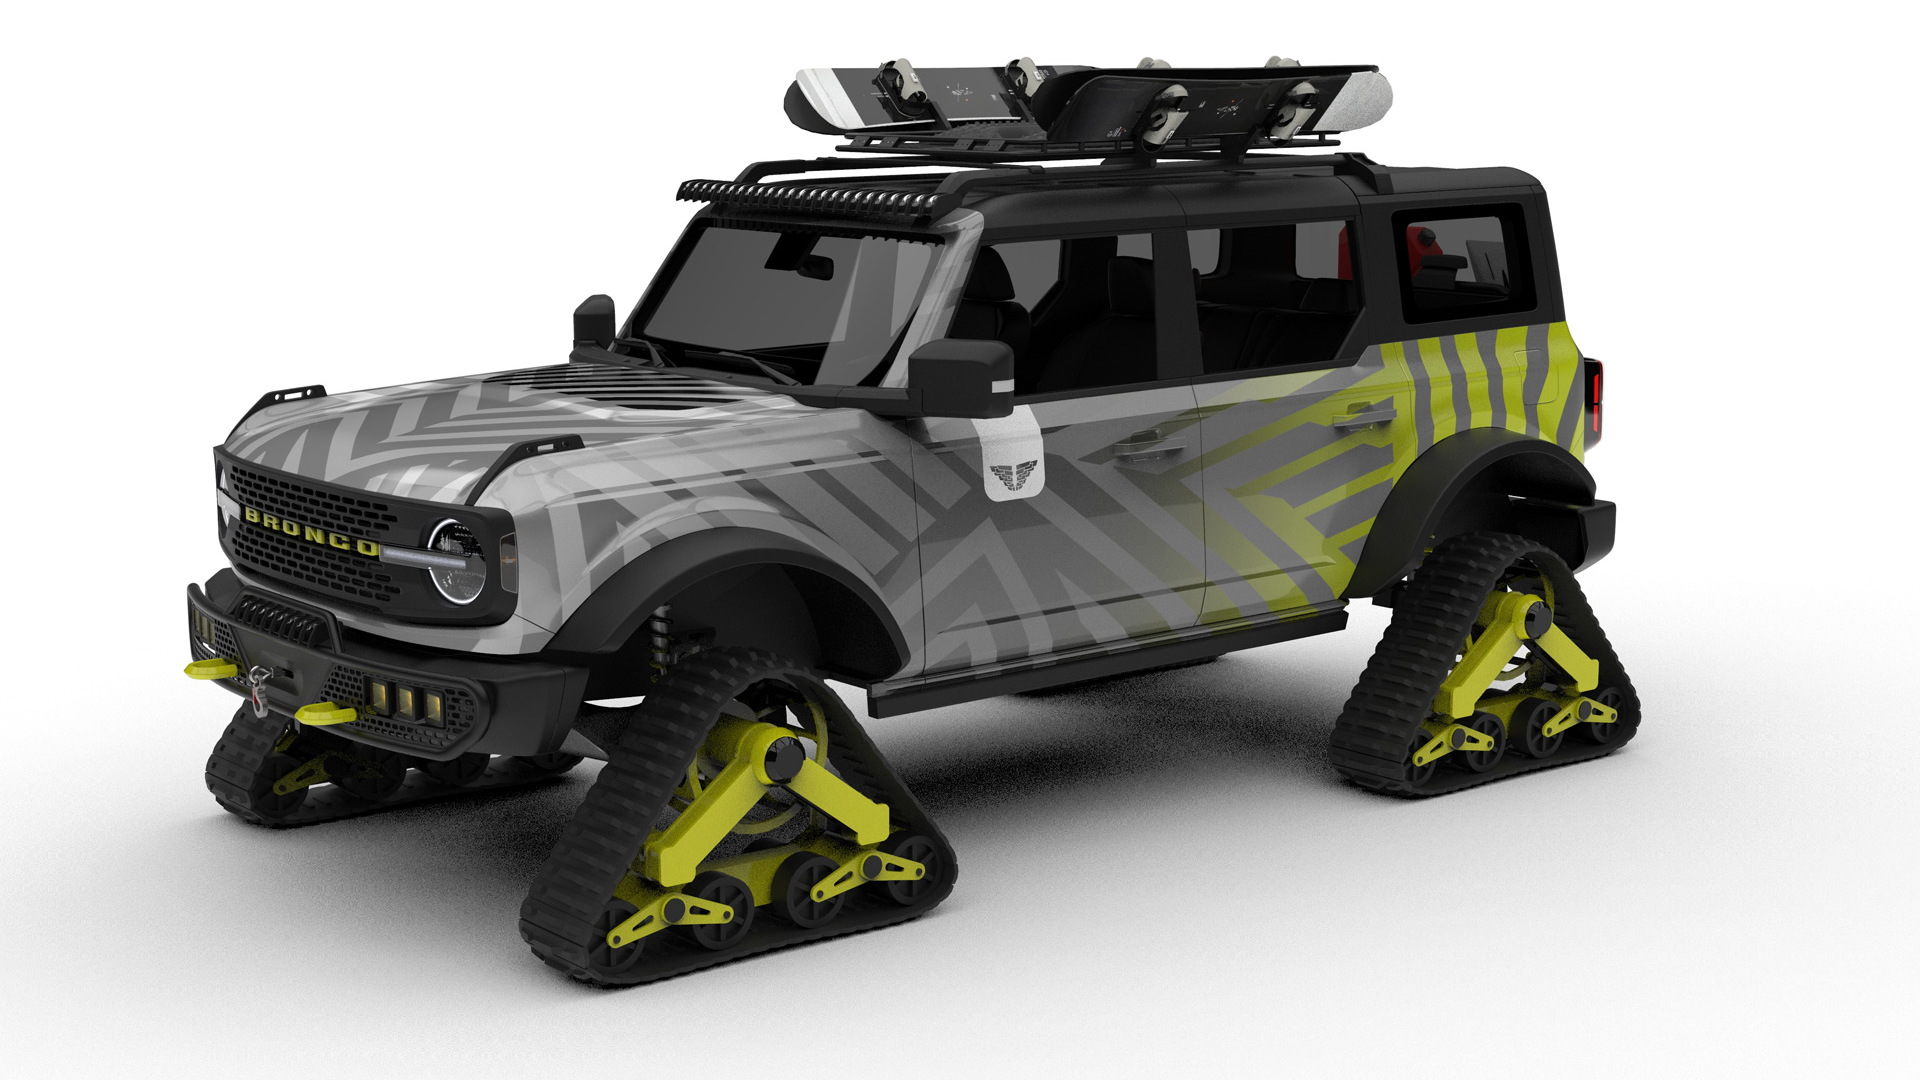 2021 Ford Bronco by Tucci Hot Rods